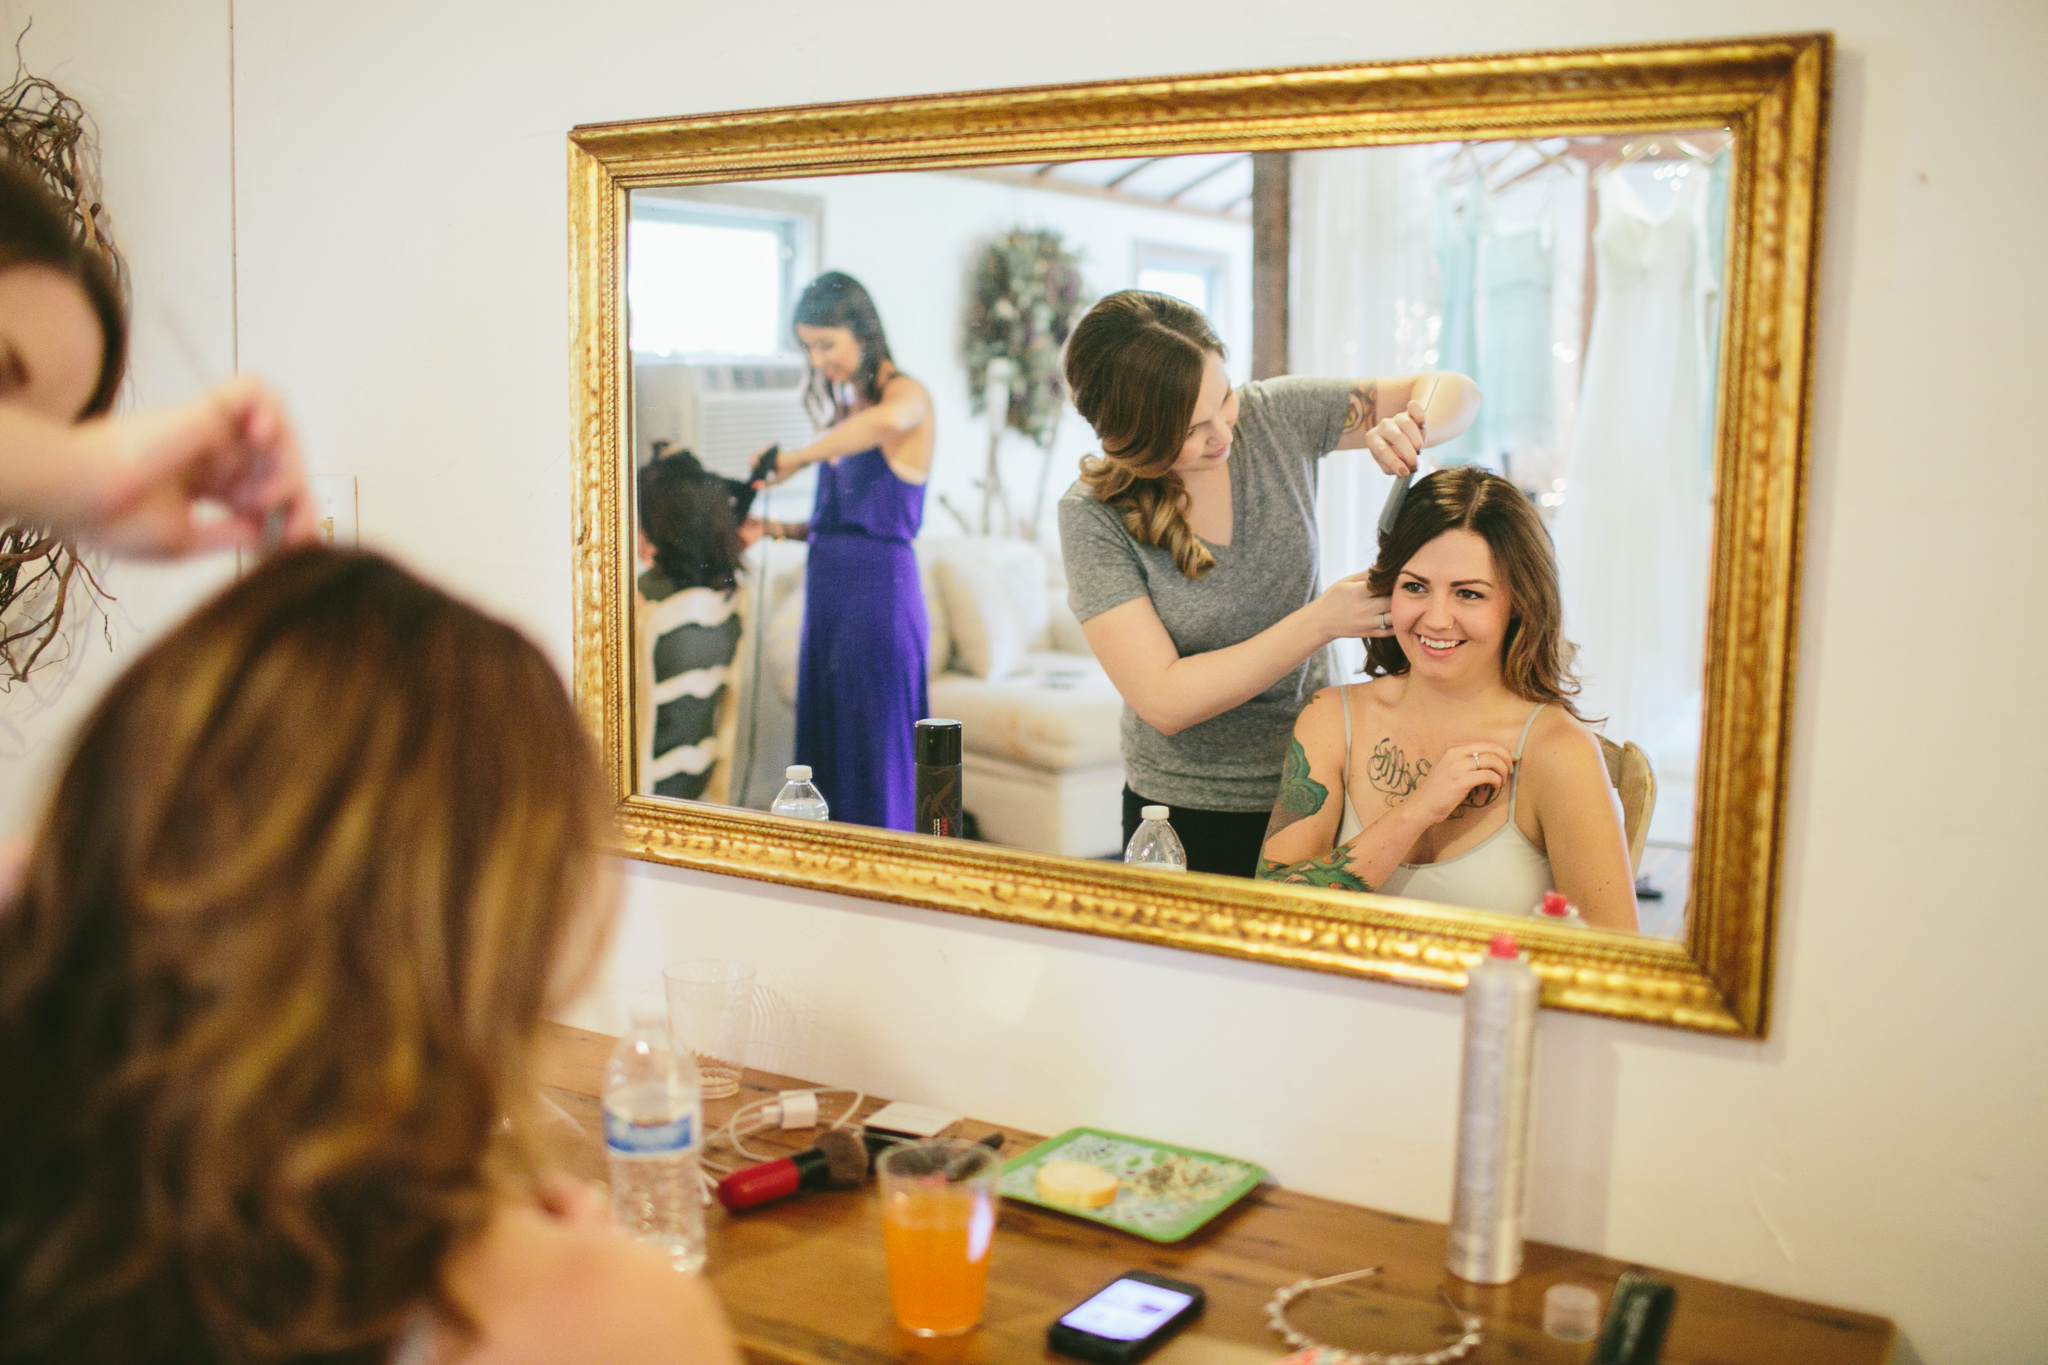 Amy+Nick-WEDDING_KellyBoitanoPhotography20151219_0007